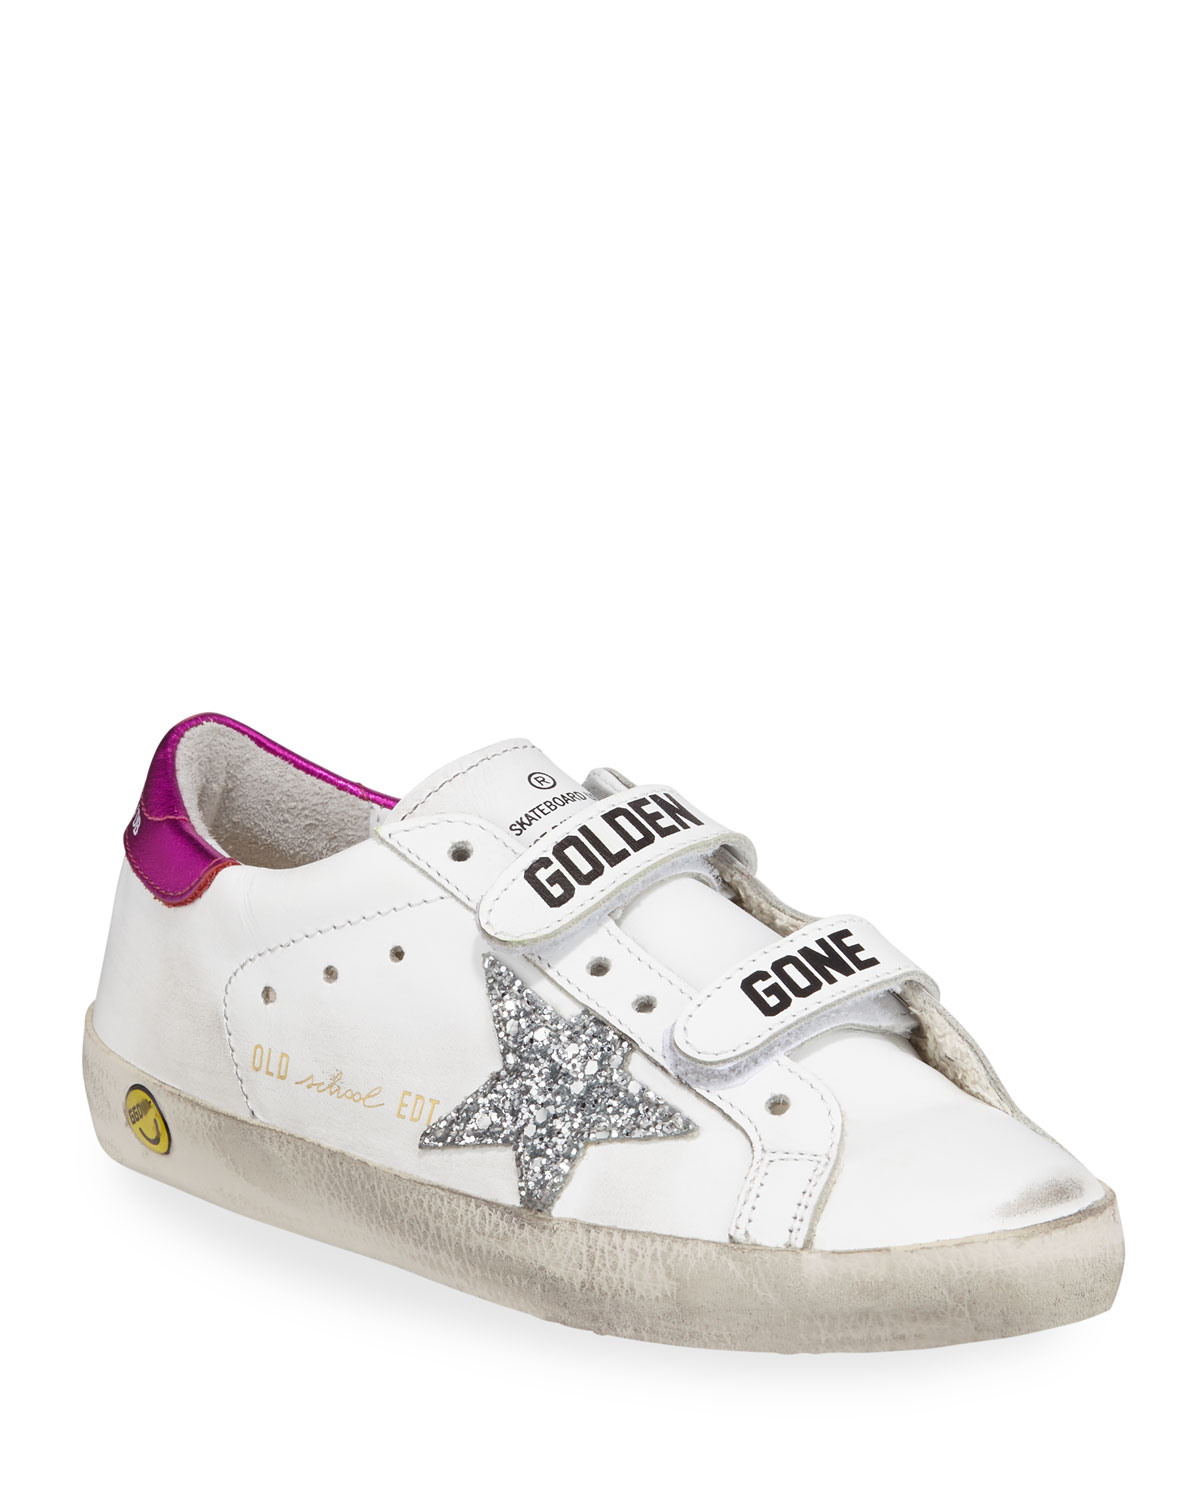 ec3a7dde147 Golden Goose Old School Leather Grip-Strap Sneakers